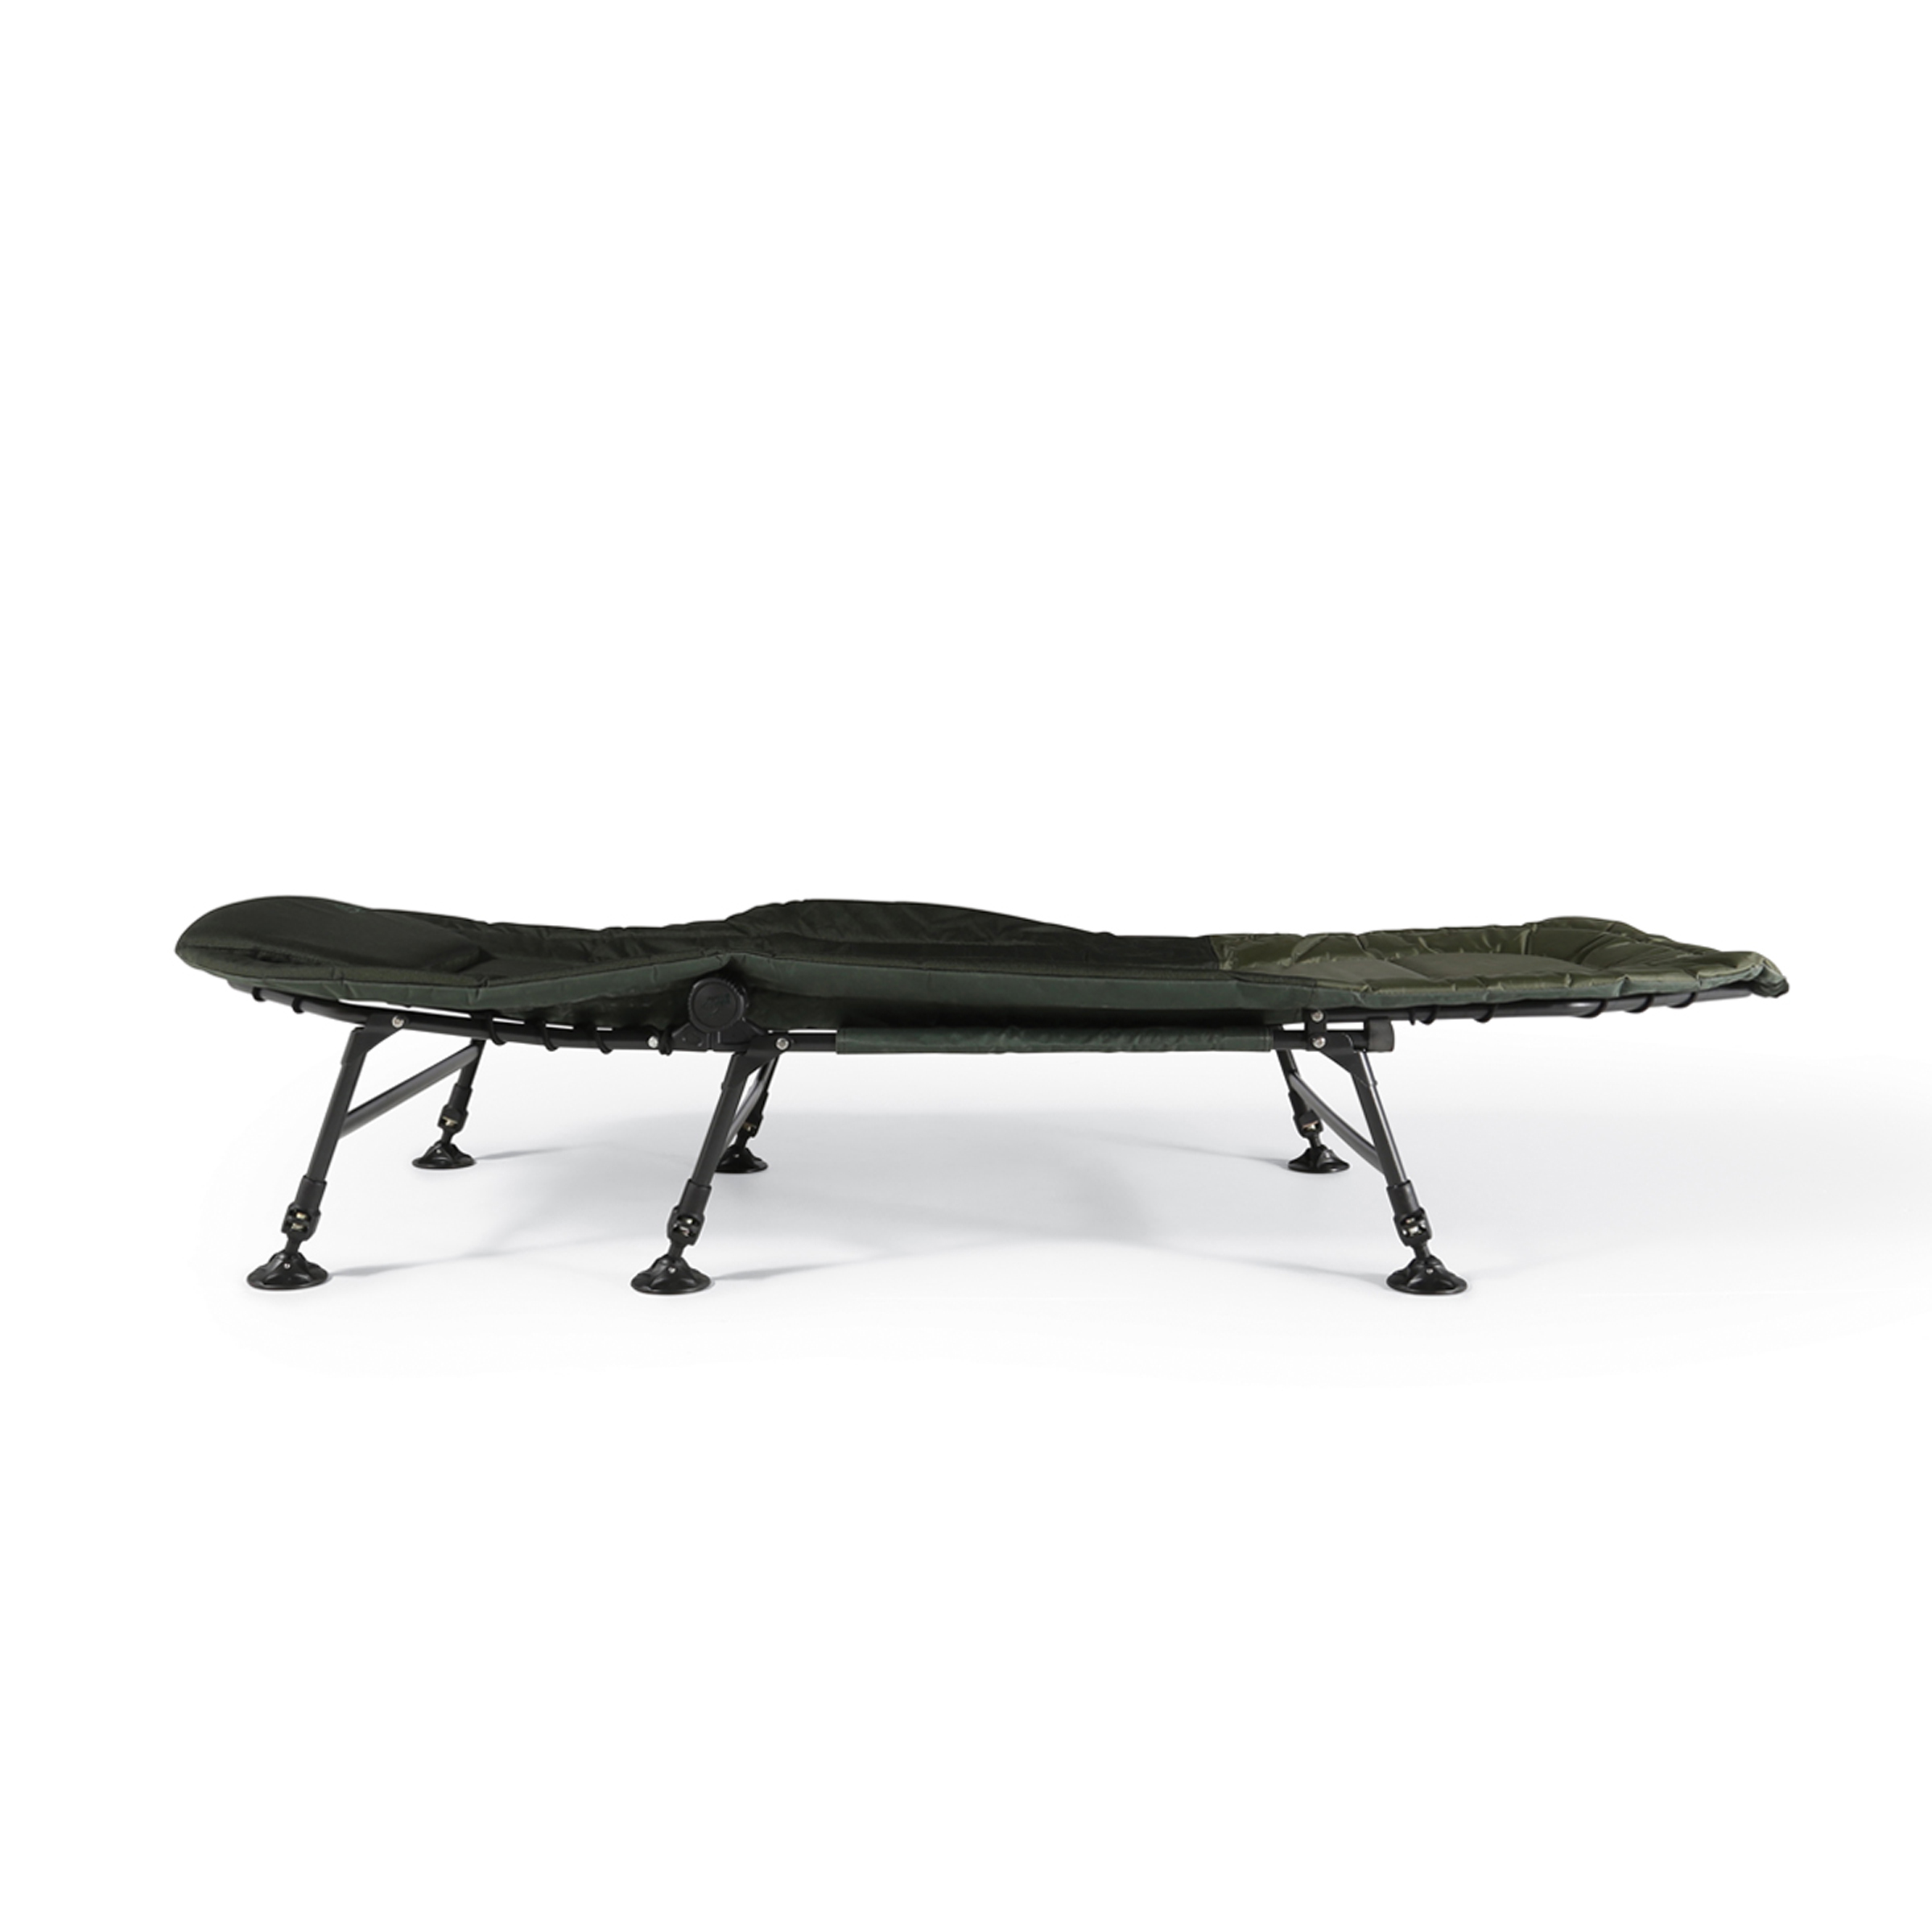 fishing bed chair used dining room loose covers cyprinus carpstar carp bedchair and memory